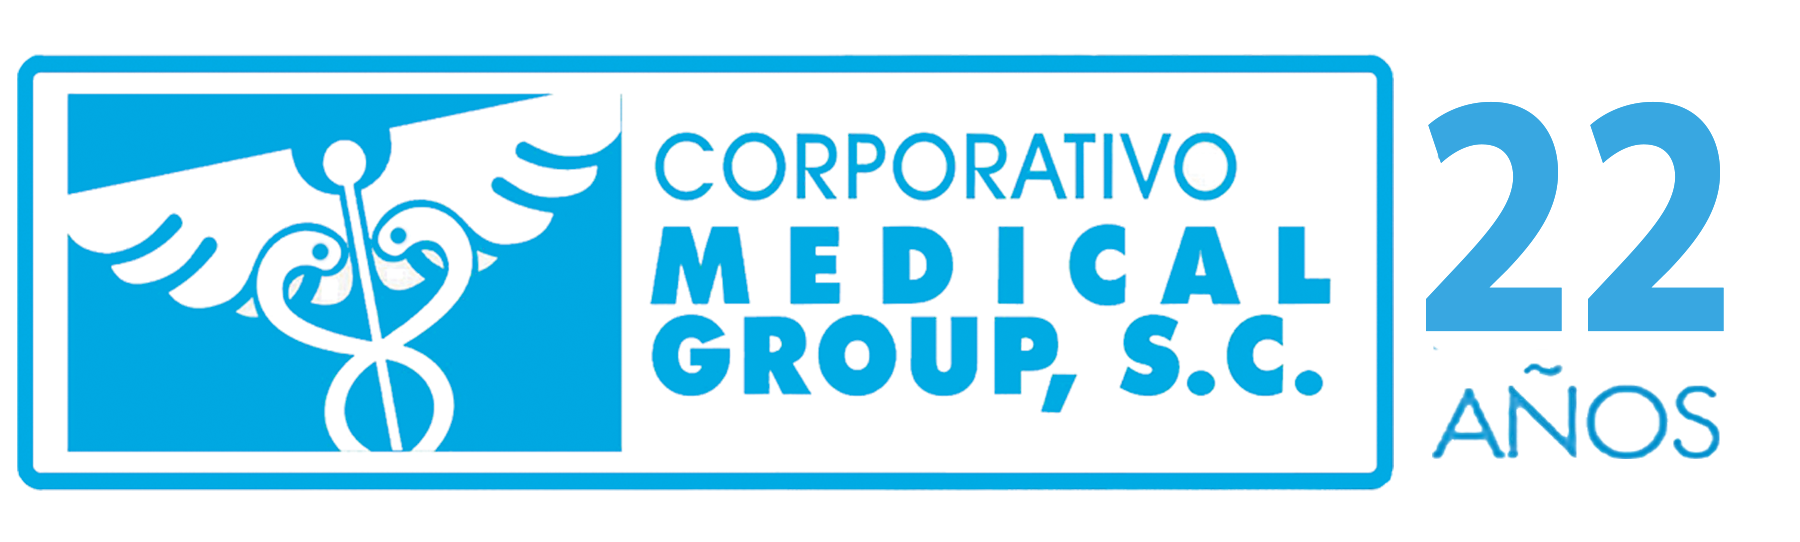 Corporativo Medical Group